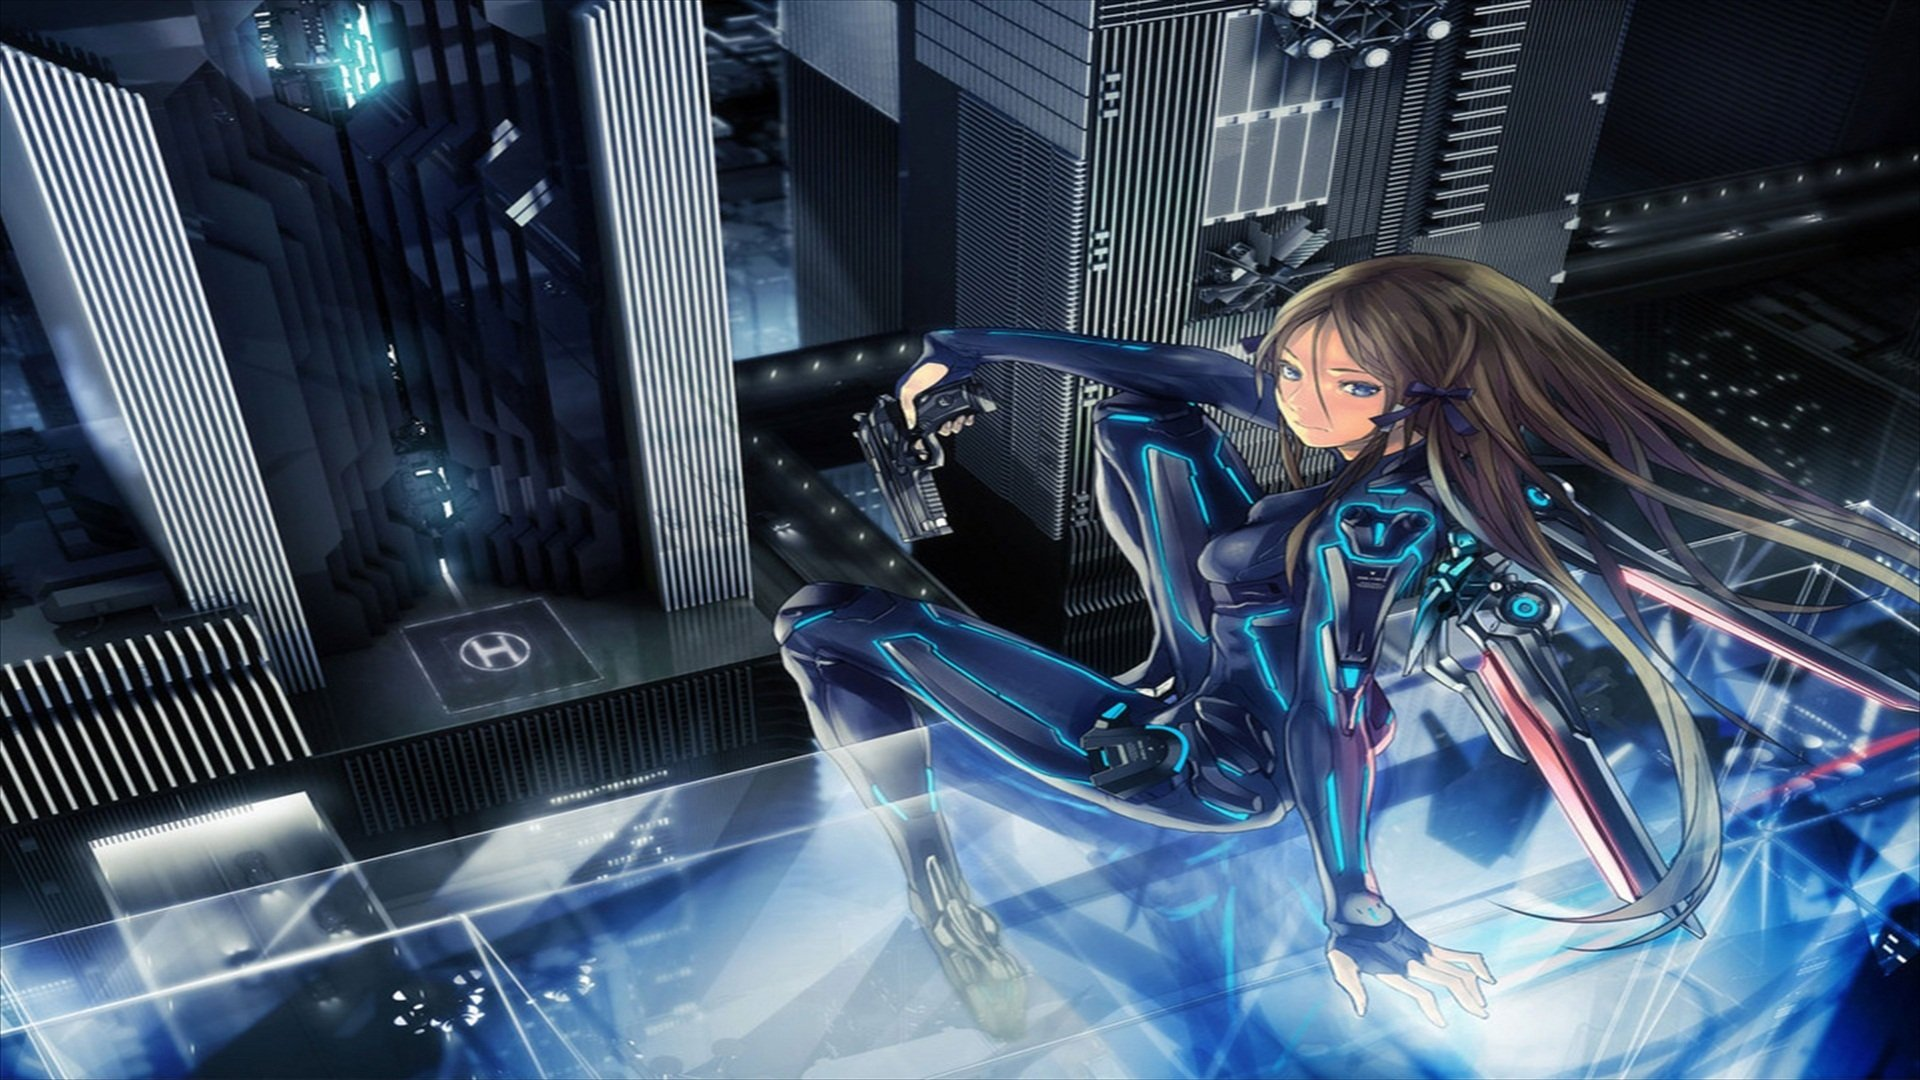 Wallpapers ID:141960